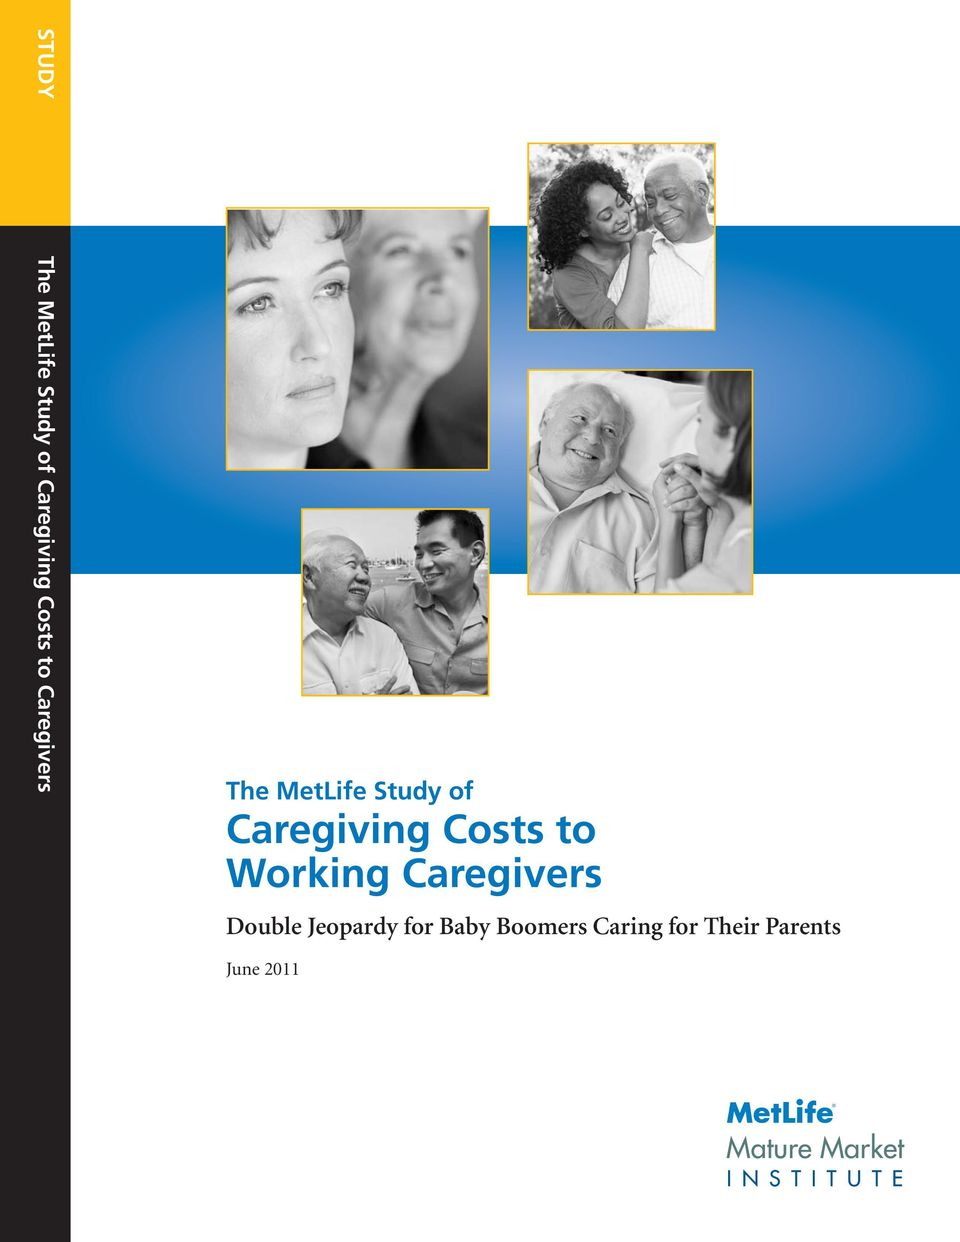 Working Caregivers Double Jeopardy for Baby Boomers